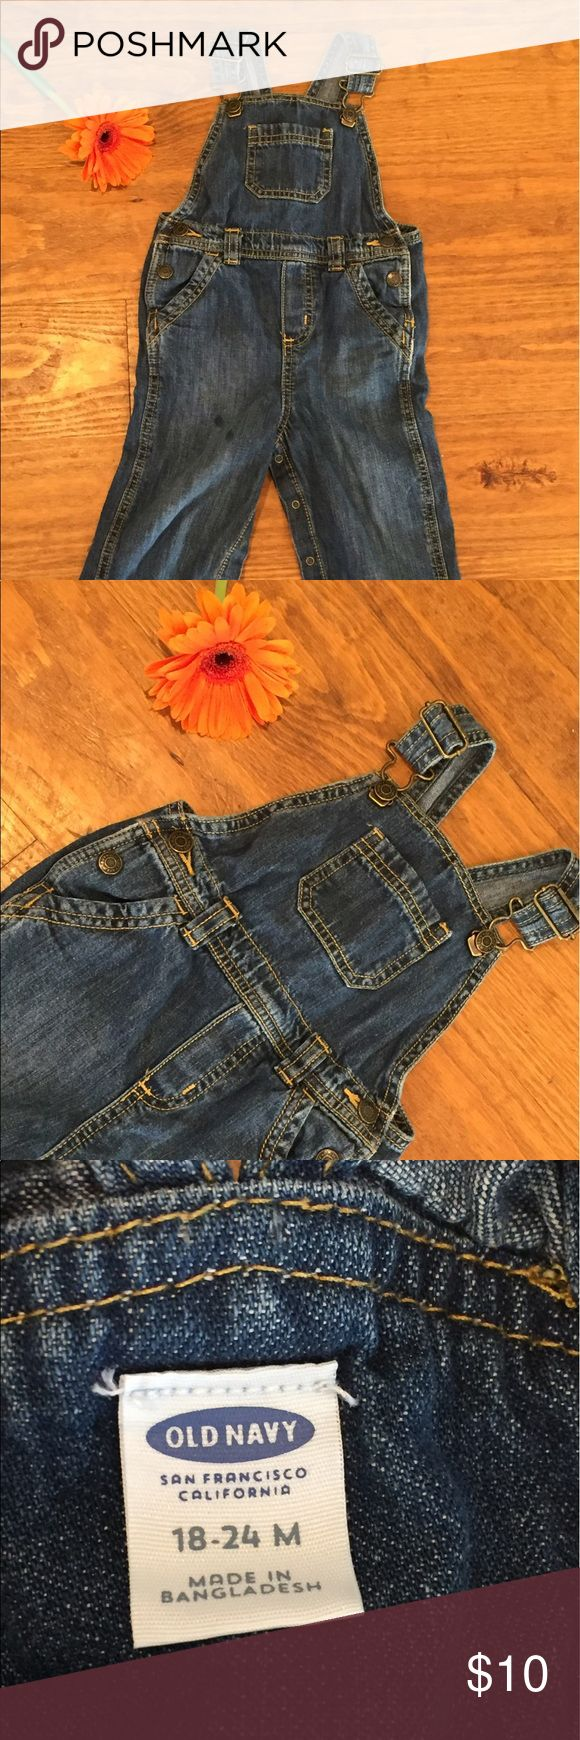 Old Navy Denim Overalls Size 18-24 Months Sweet and classic Old Navy Overalls. EUC Size 18-24 months. Old Navy Bottoms Jeans